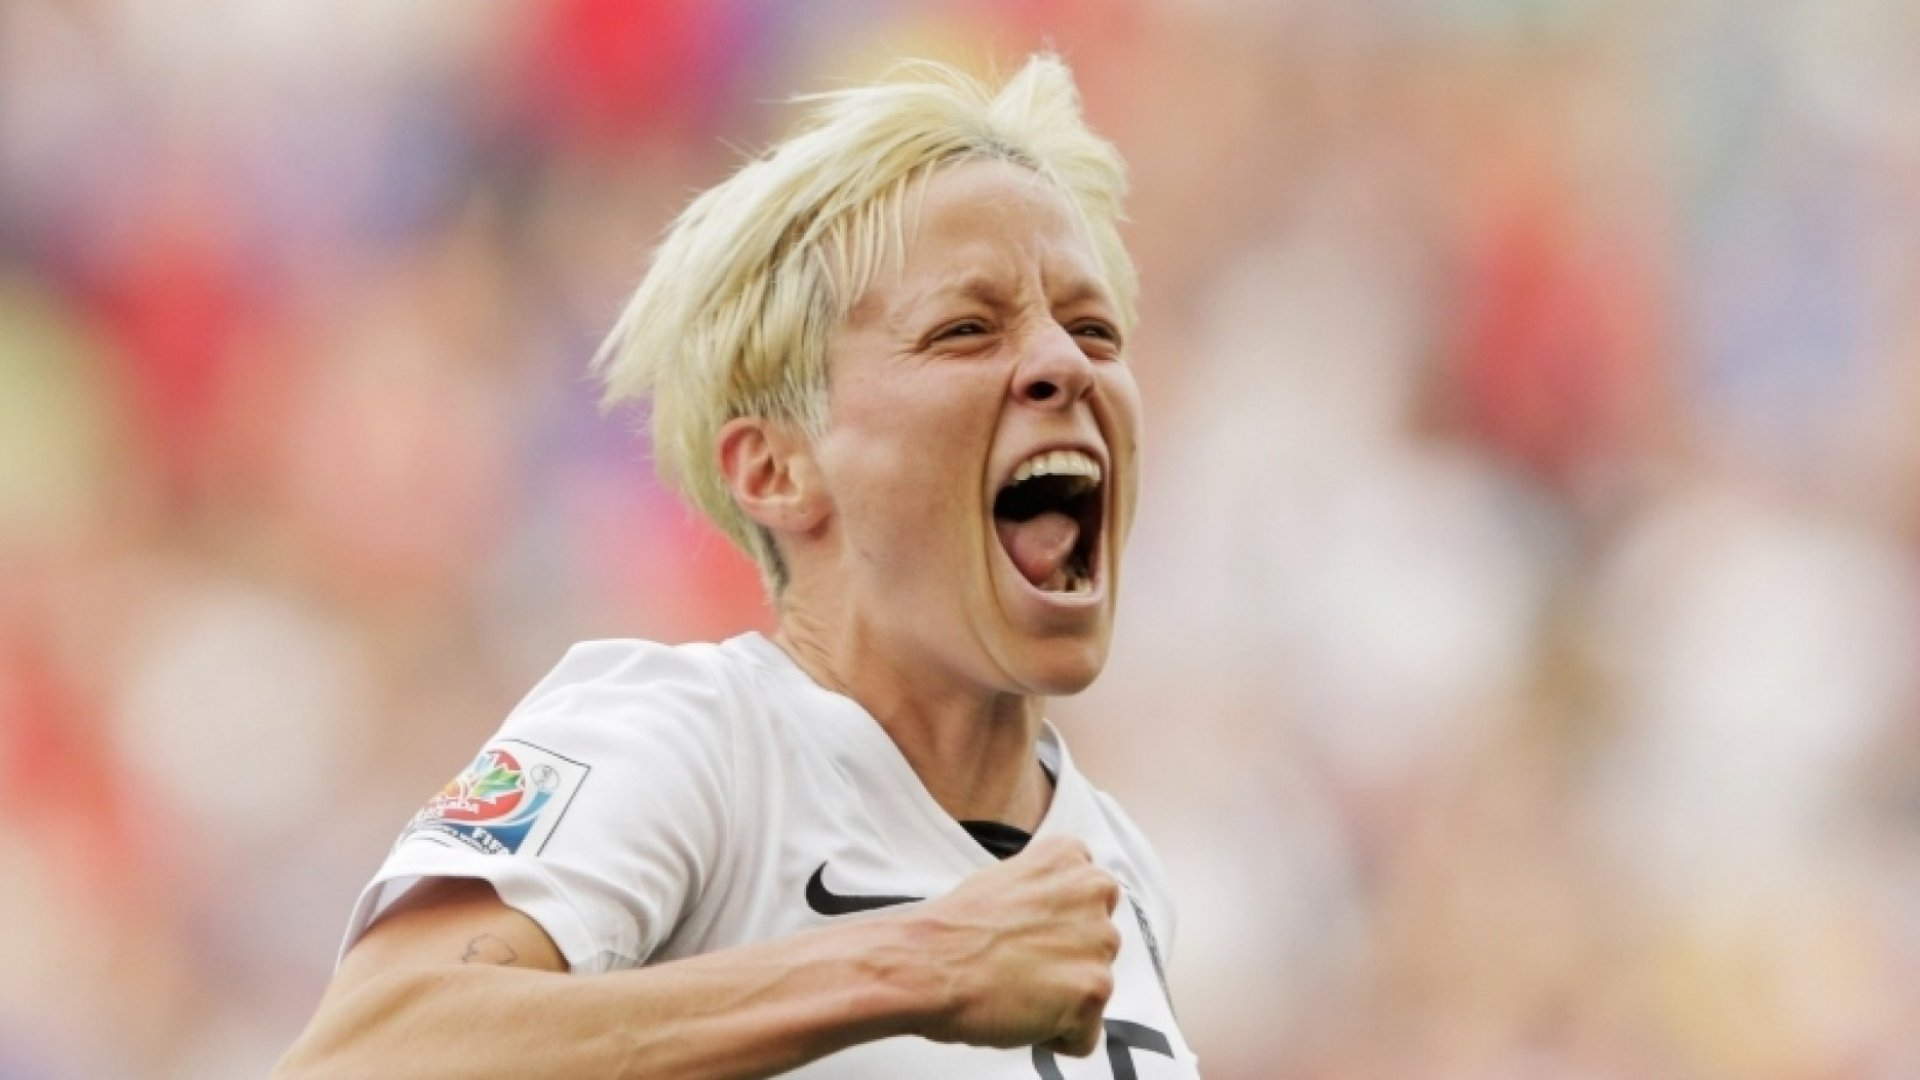 5 Leadership Lessons From the U.S. Women's World Cup Team